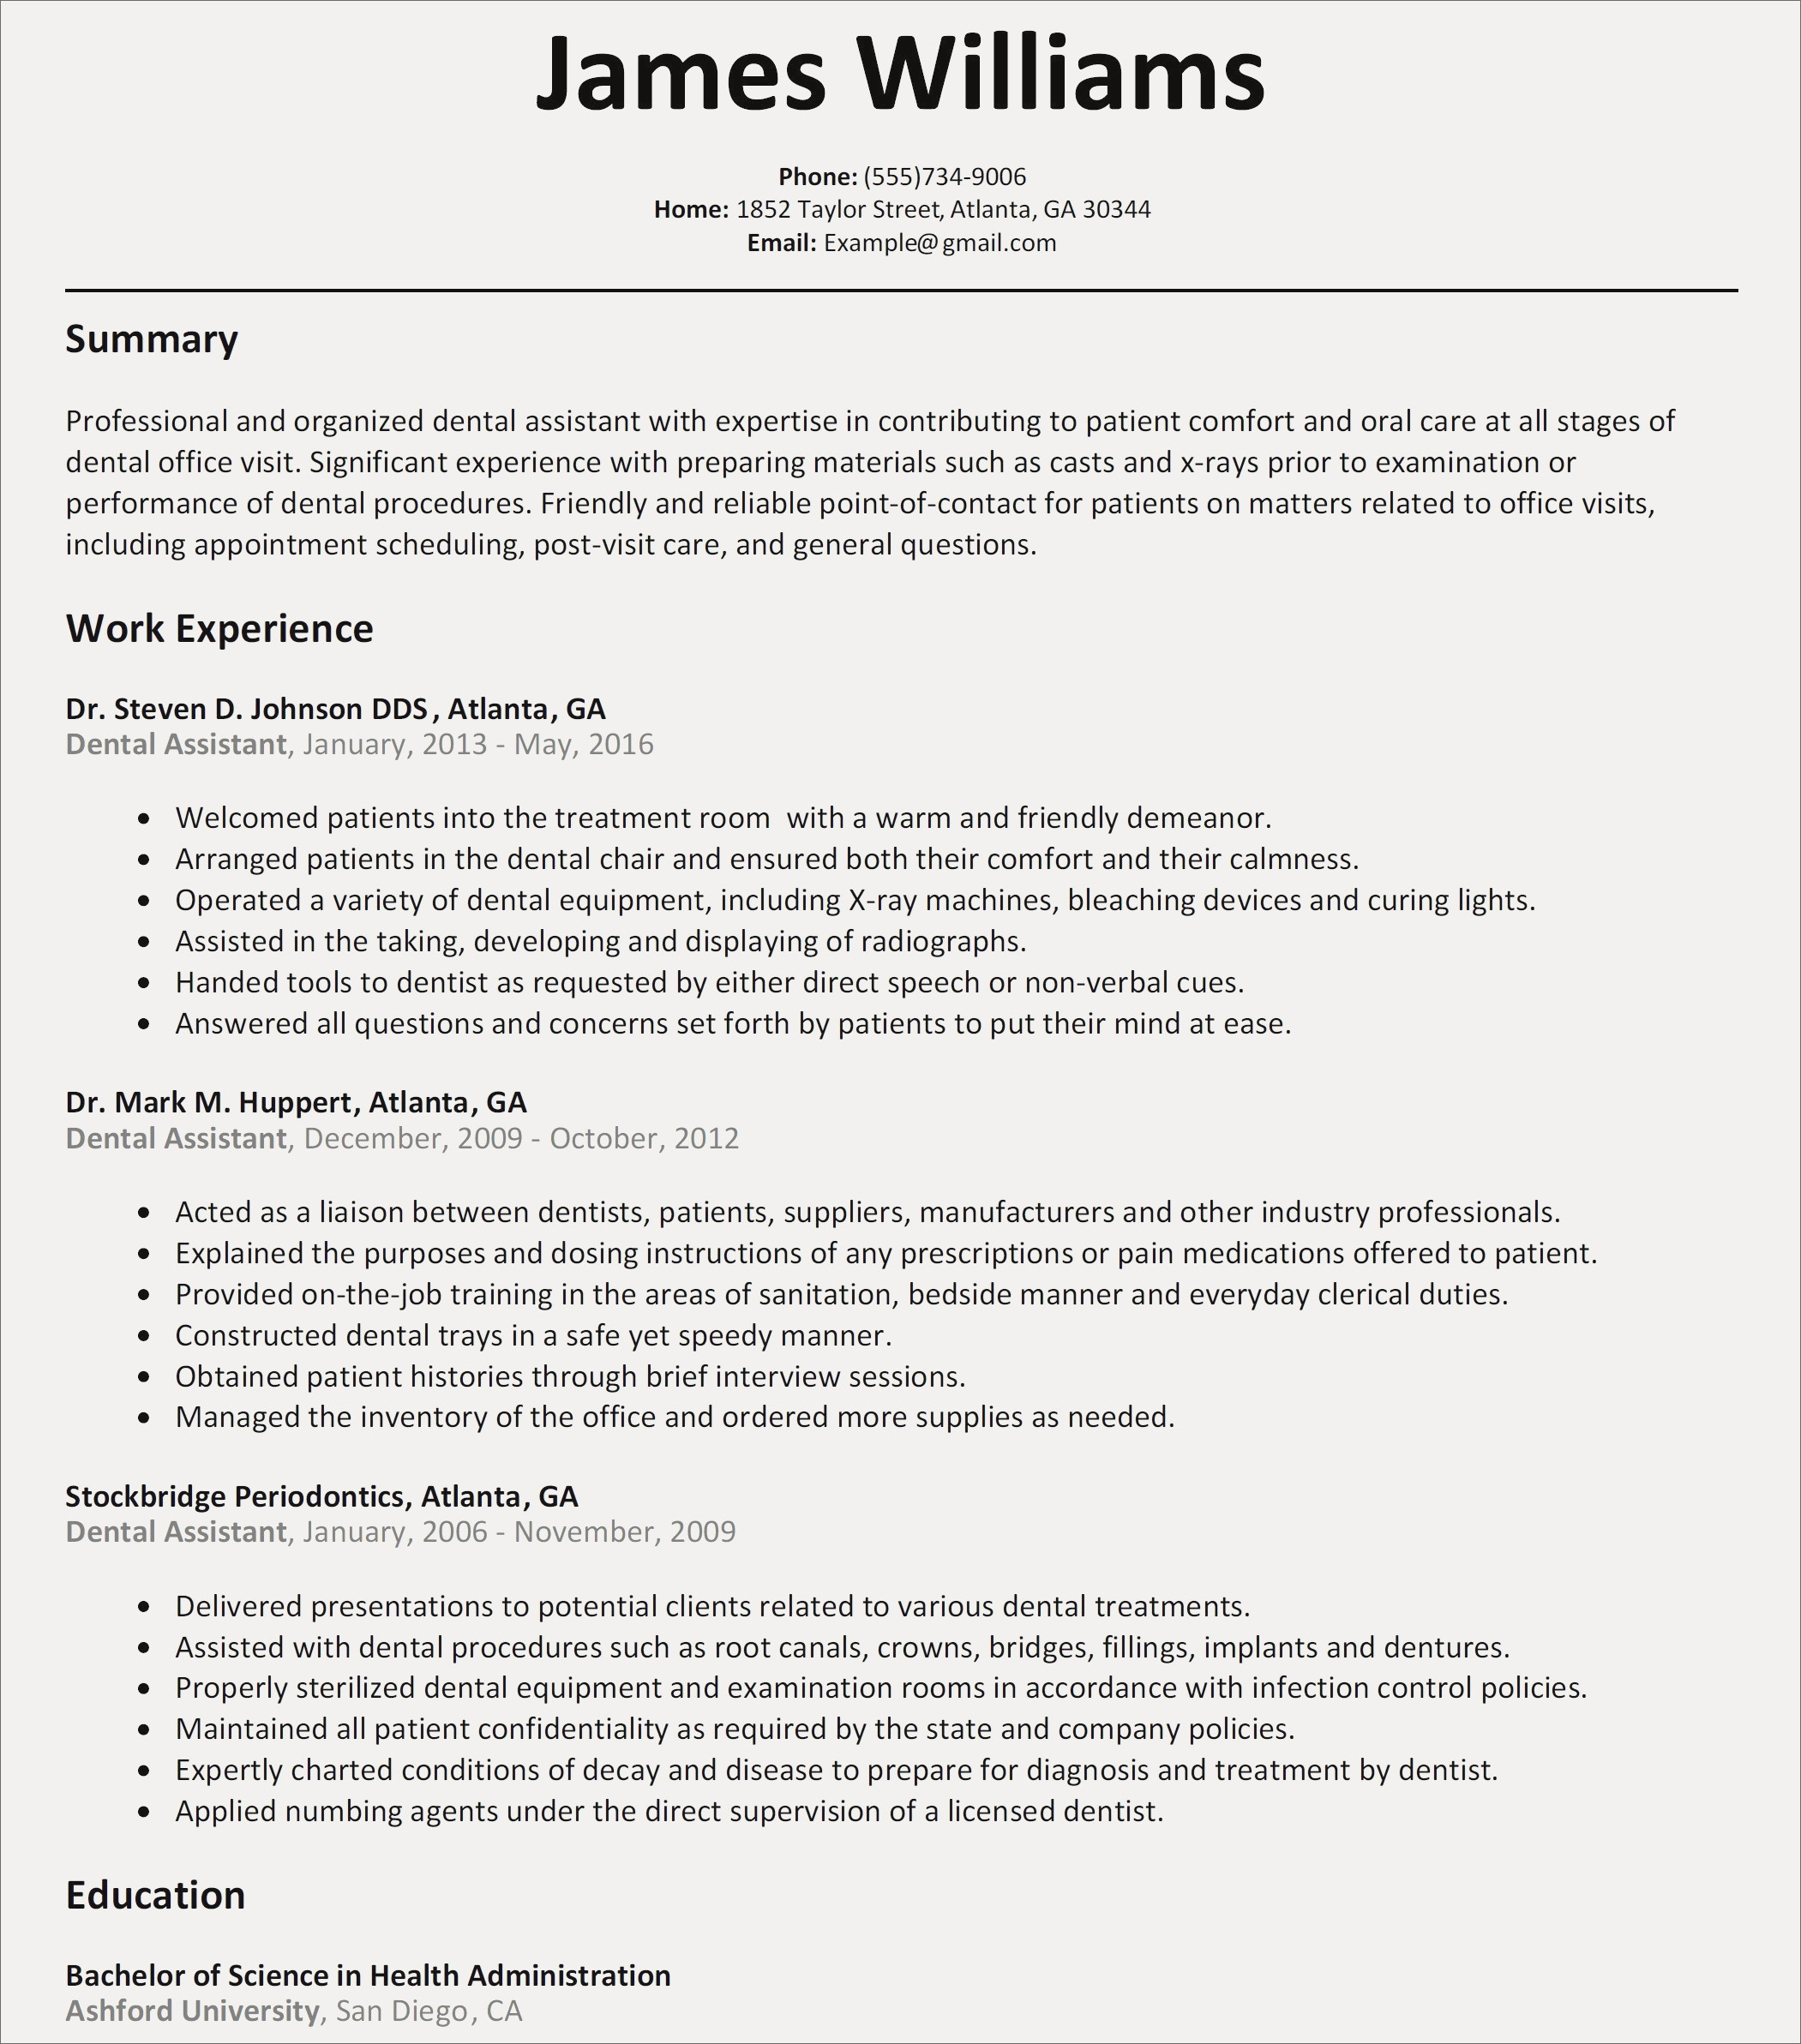 Performance Resume Example - How to Make A Resume Cove Best How to Write A Cover Letter for